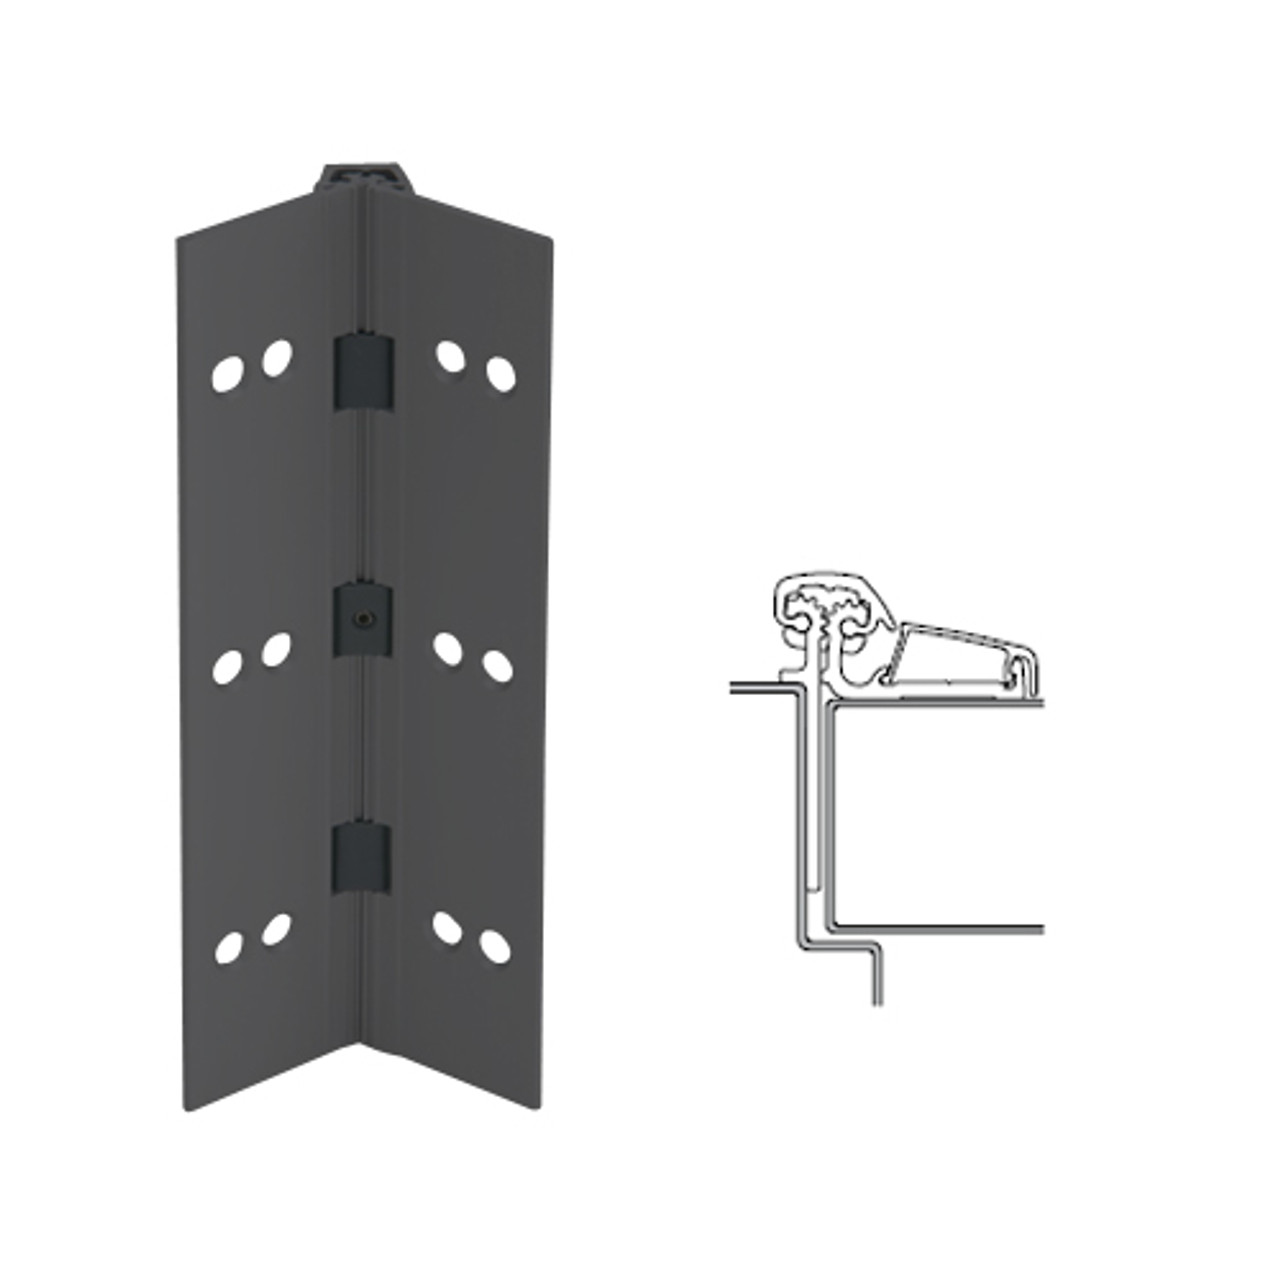 053XY-315AN-83-SECWDHM IVES Adjustable Half Surface Continuous Geared Hinges with Security Screws - Hex Pin Drive in Anodized Black